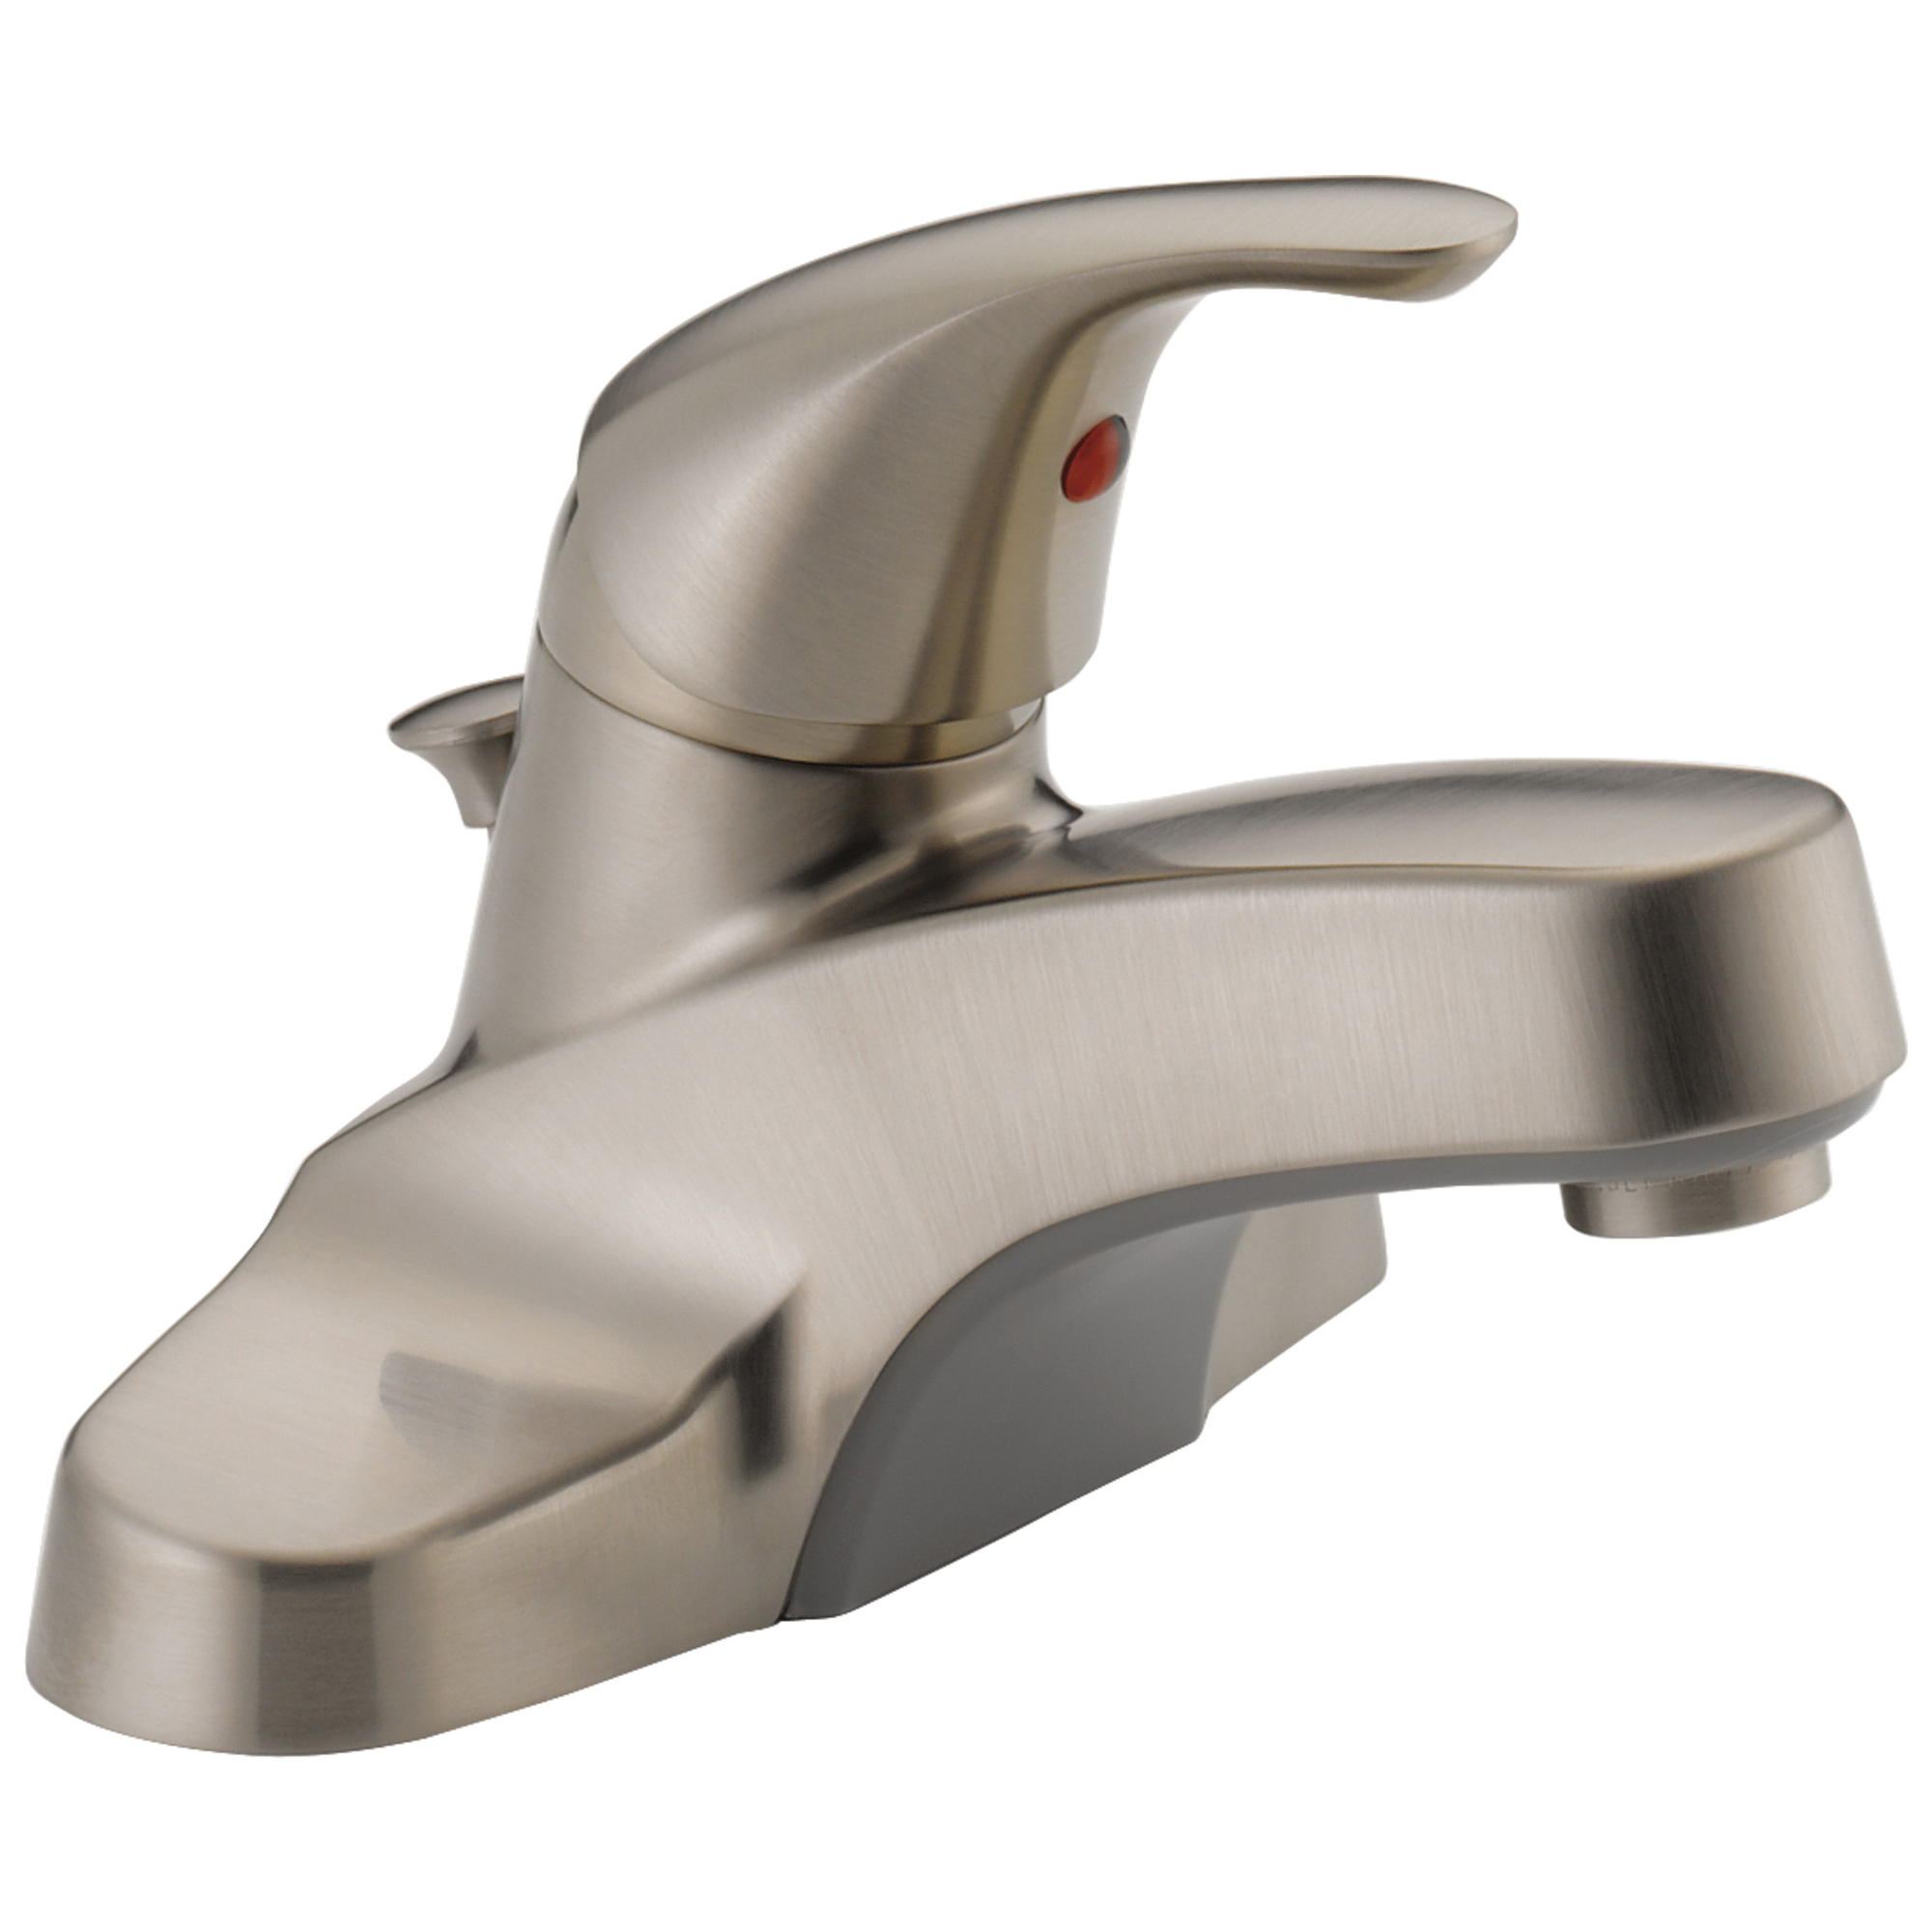 Peerless® P136LF-BN-M Centerset Lavatory Faucet, Brilliance® Brushed Nickel, 1 Handles, Metal Pop-Up Drain, 1.2 gpm